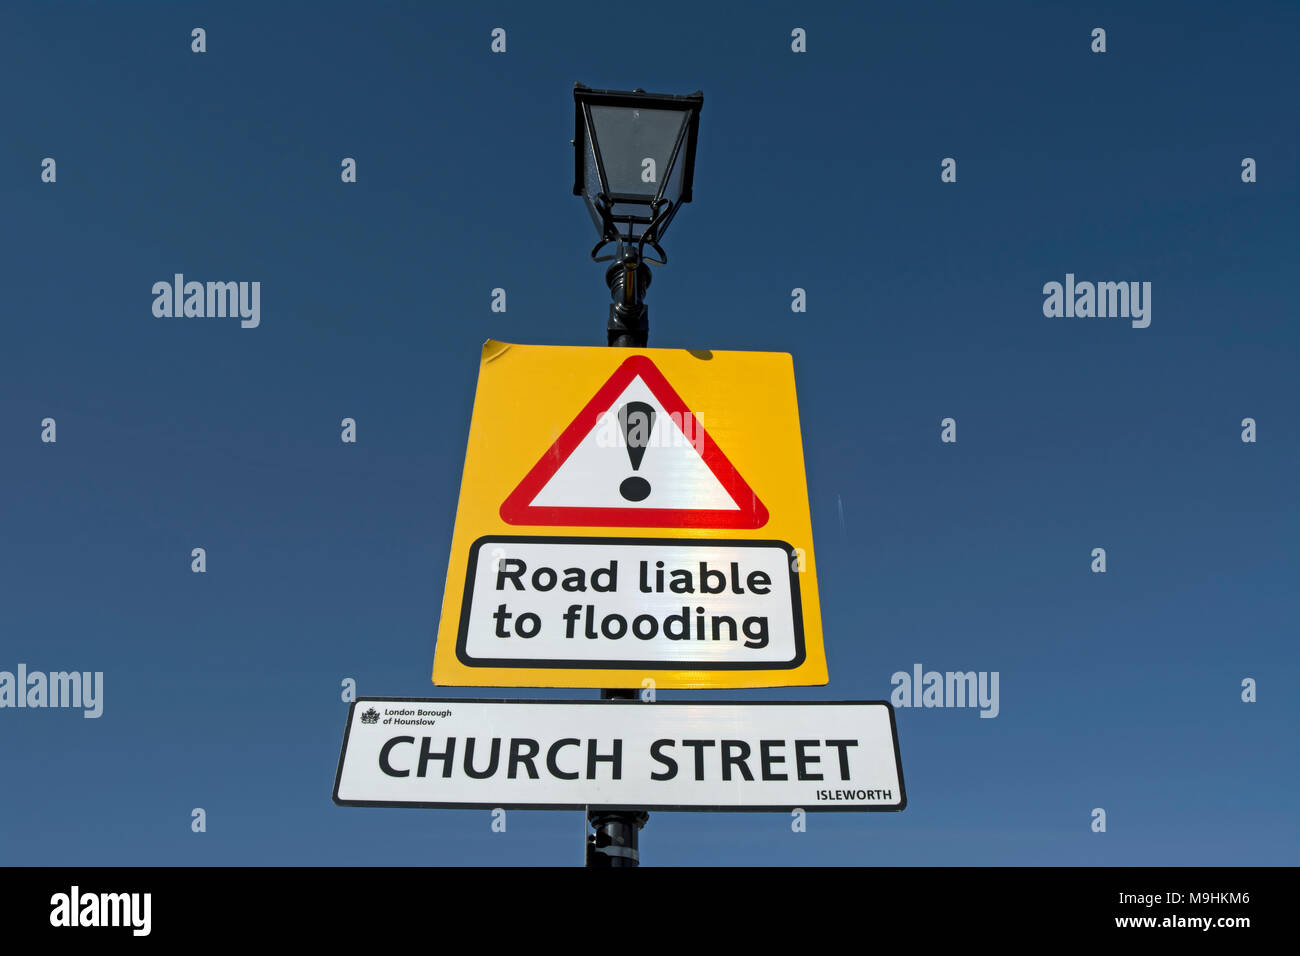 street name sign for church street, isleworth, middlesex, england, below a road liable to flooding warning sign Stock Photo